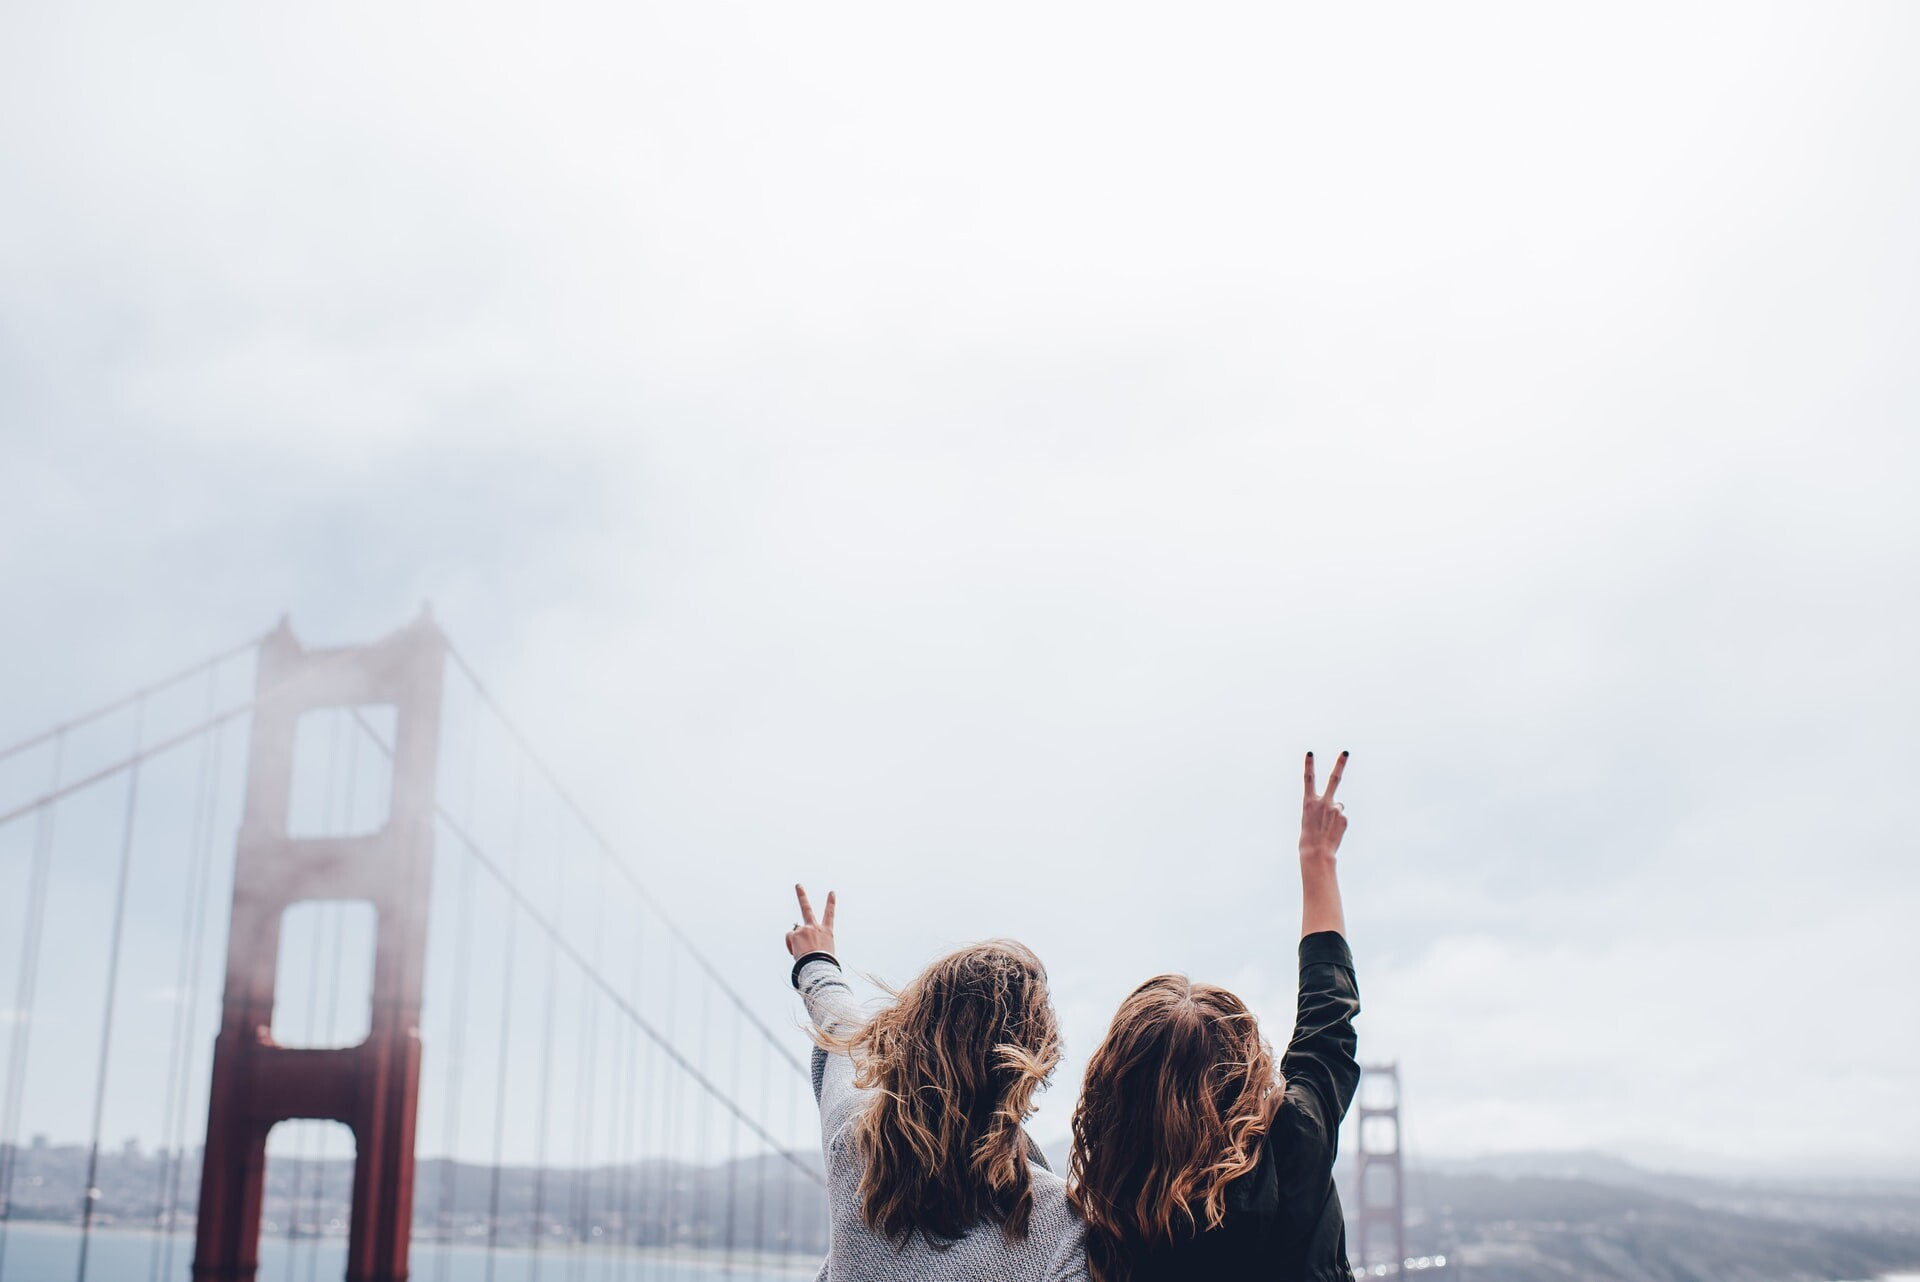 Women next to the Golden Gate in San Francisco